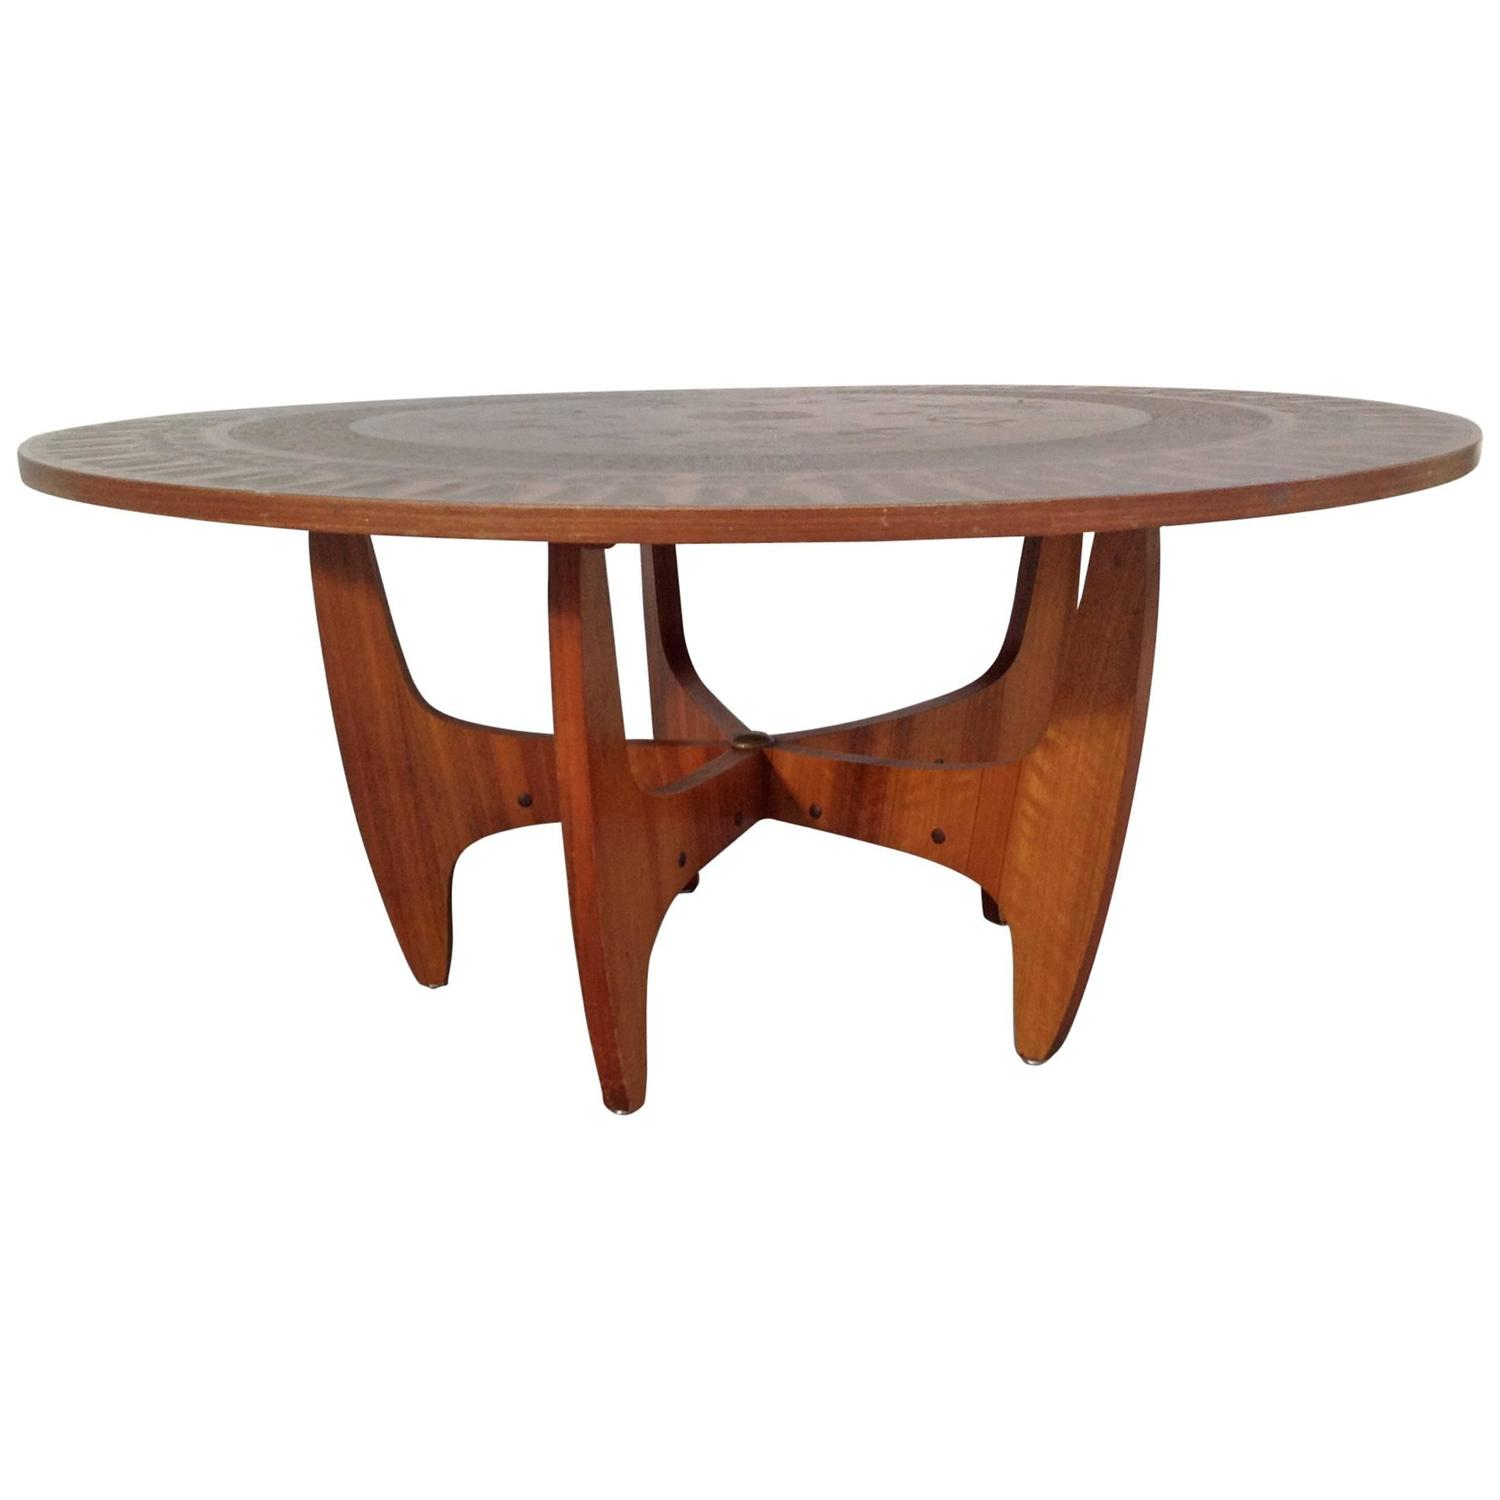 Round copper leaf coffee table for sale at 1stdibs for Round coffee tables for sale